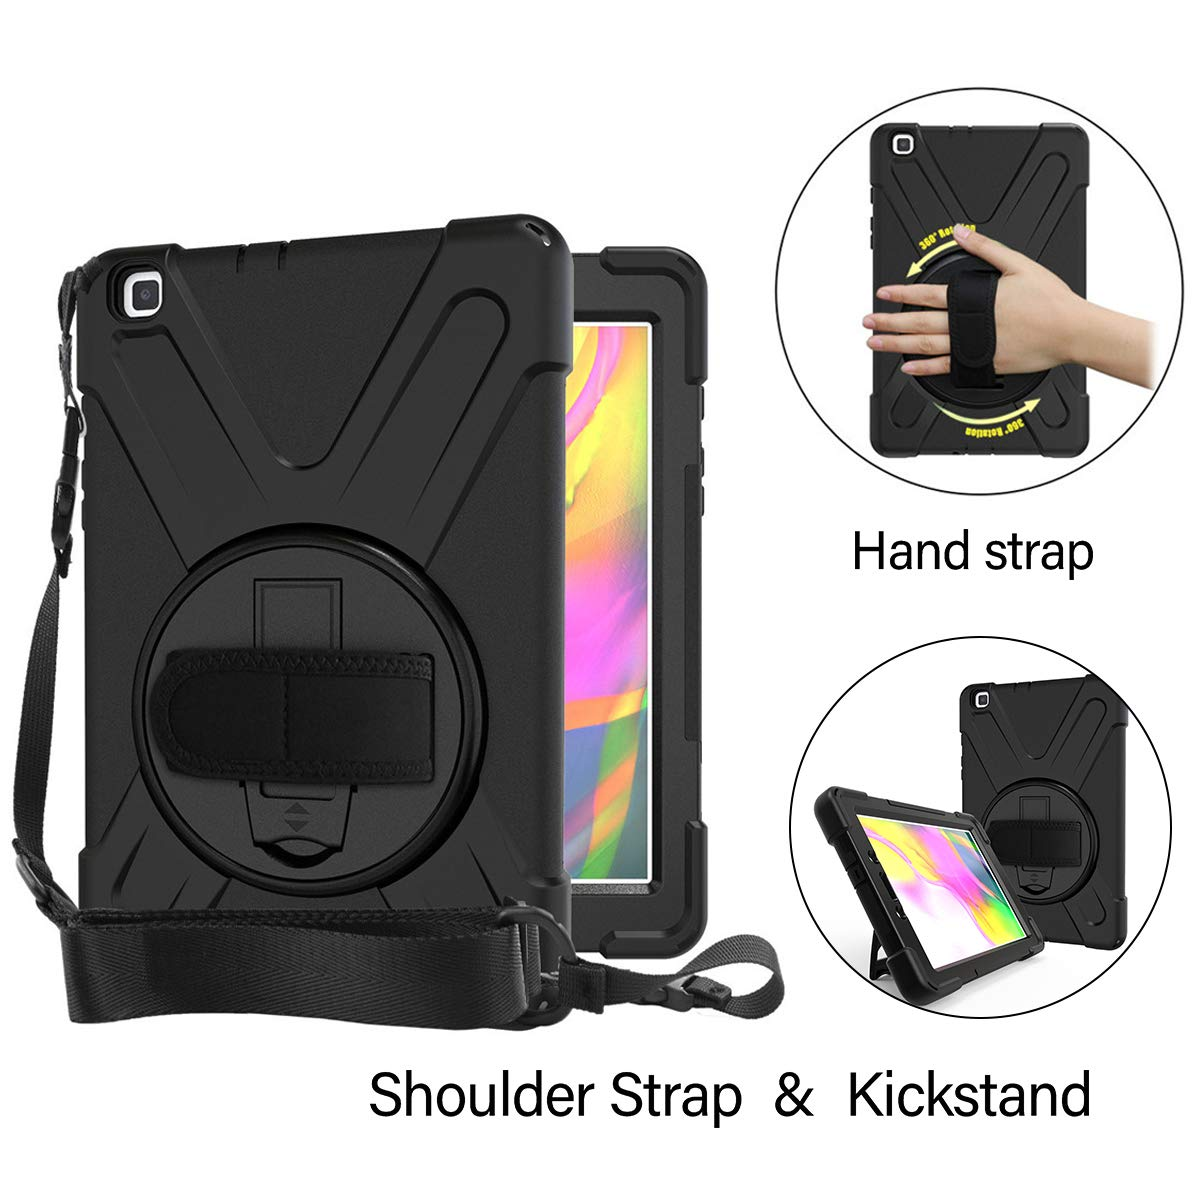 Yudesun Case for Samsung Galaxy Tab A T290 SM-T290 T295 T297 Stand Silicone Soft Skin Shockproof Protective Cover Case for Samsung Galaxy Tab A 8.0 2019 8 inch Tablet